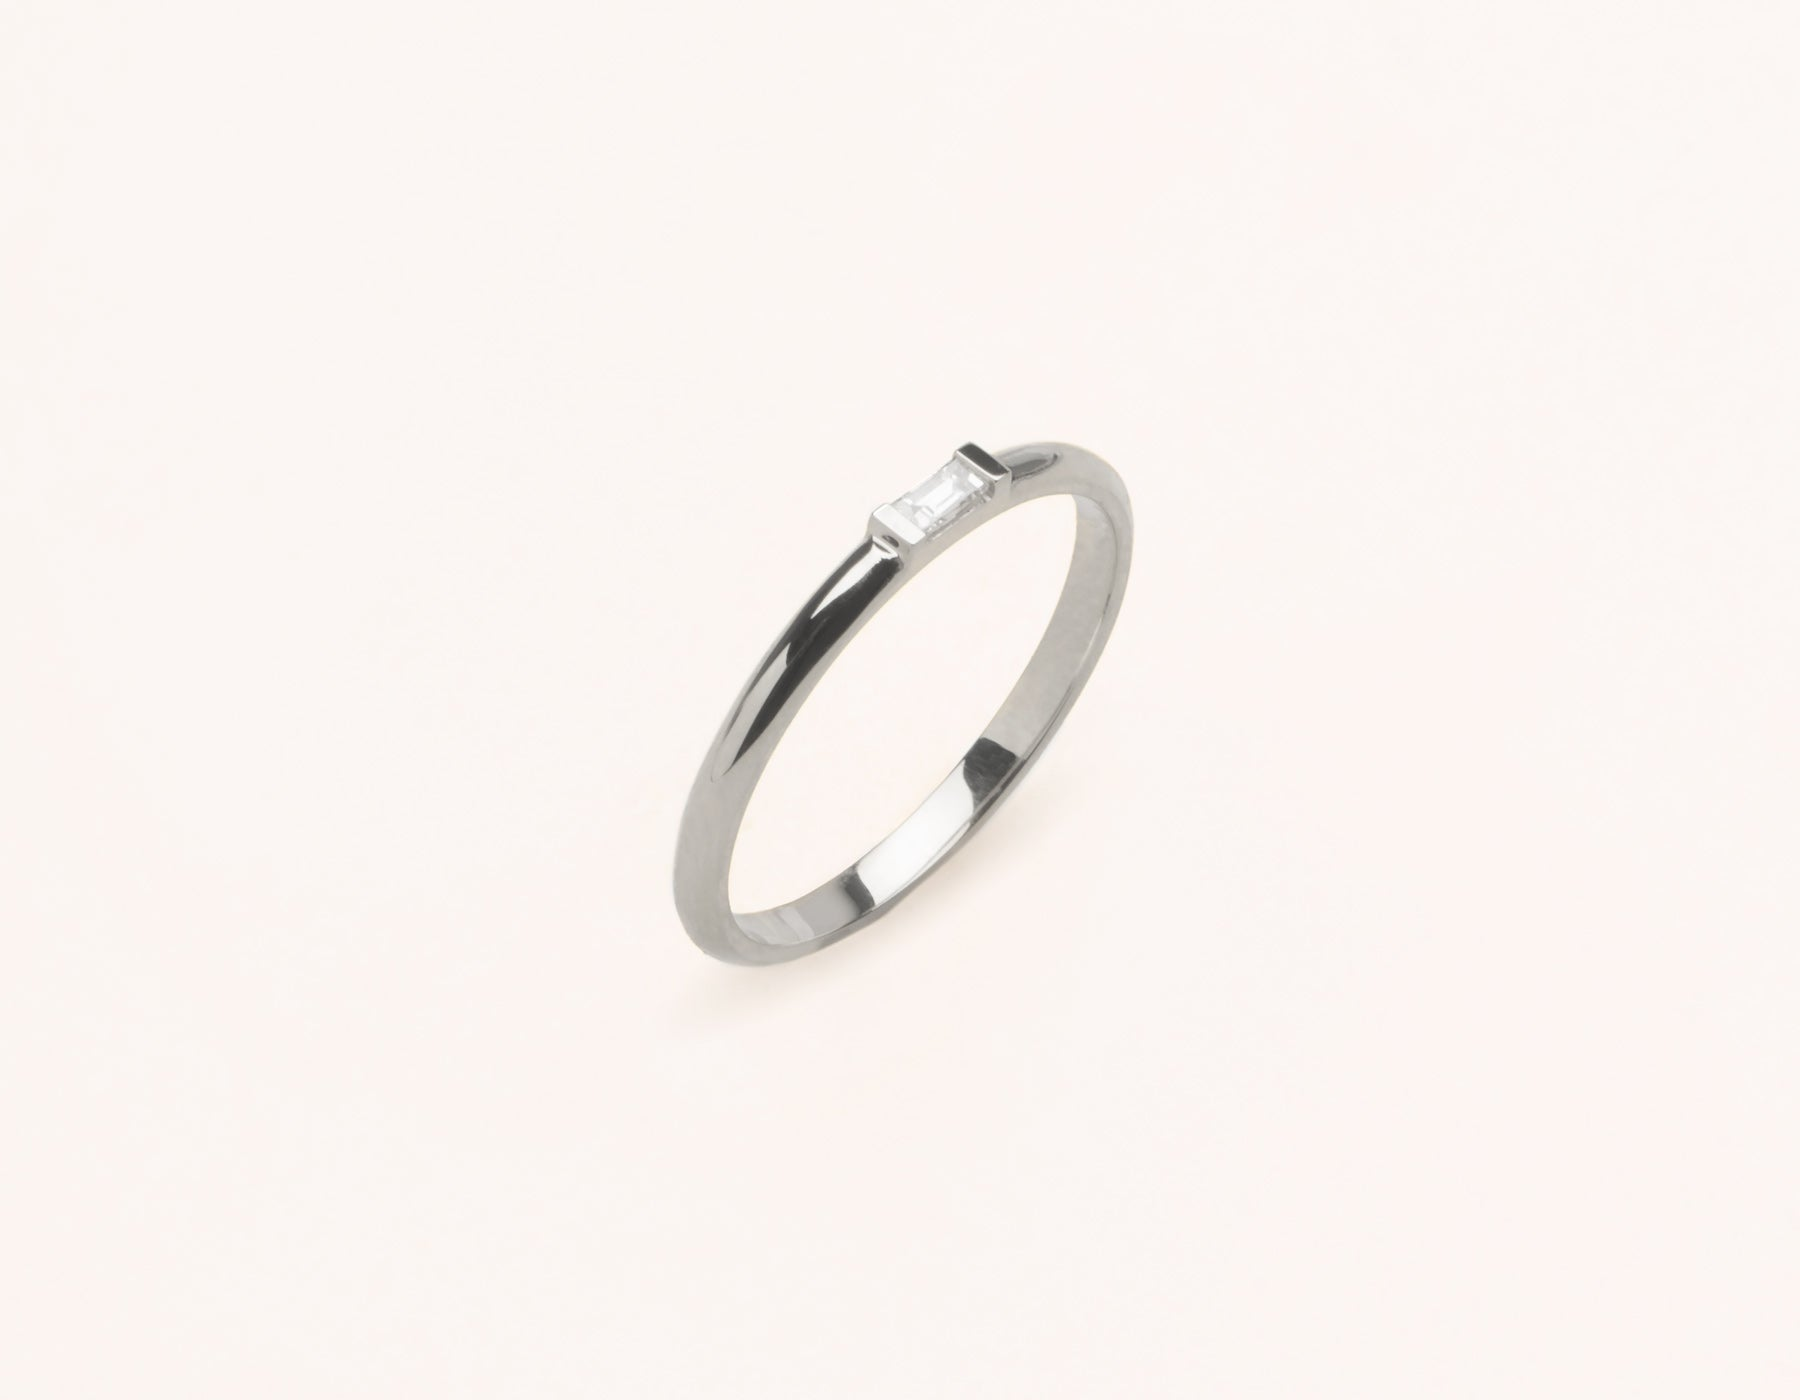 Simple stylish 14k Solid gold Baguette Diamond Ring with streamlined channel setting by Vrai & Oro, 14K White Gold